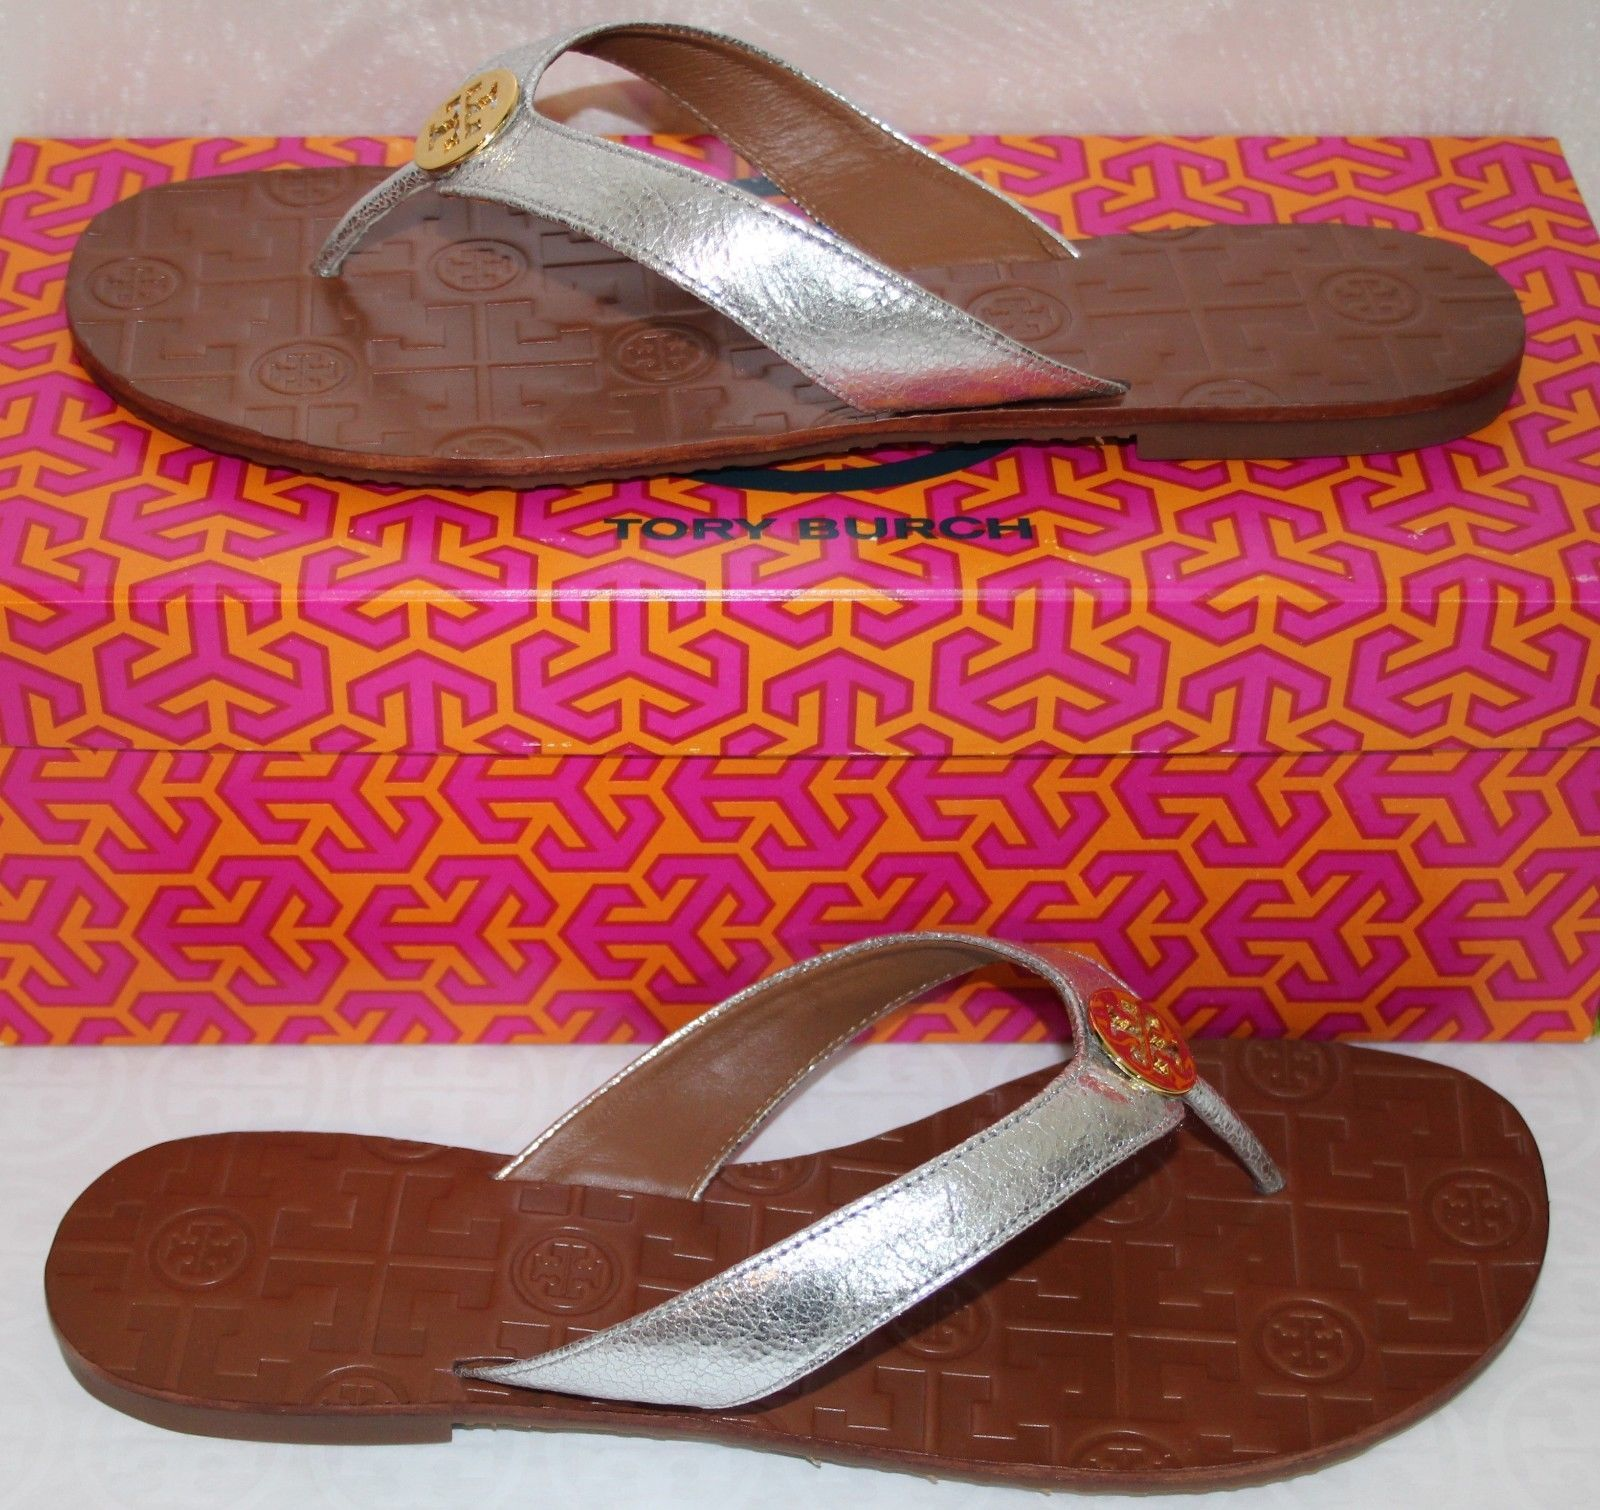 e4899279c641 Tory Burch Thora Size 8 Metallic Silver Leather Flat Thong Sandals